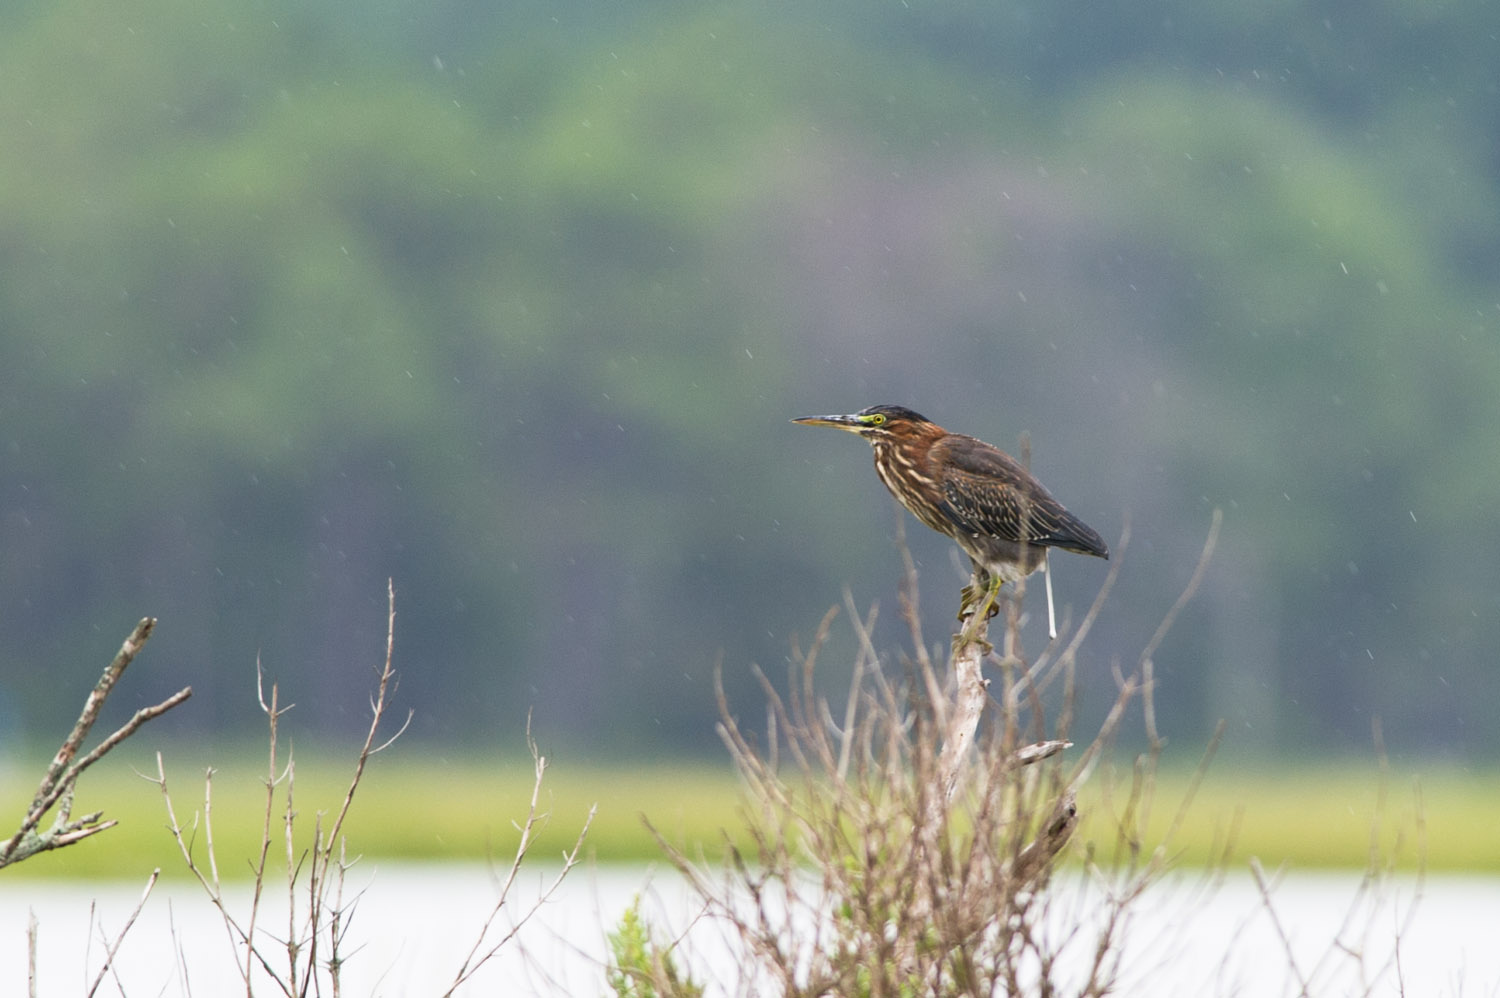 A green heron perches on a branch while it begins to rain.